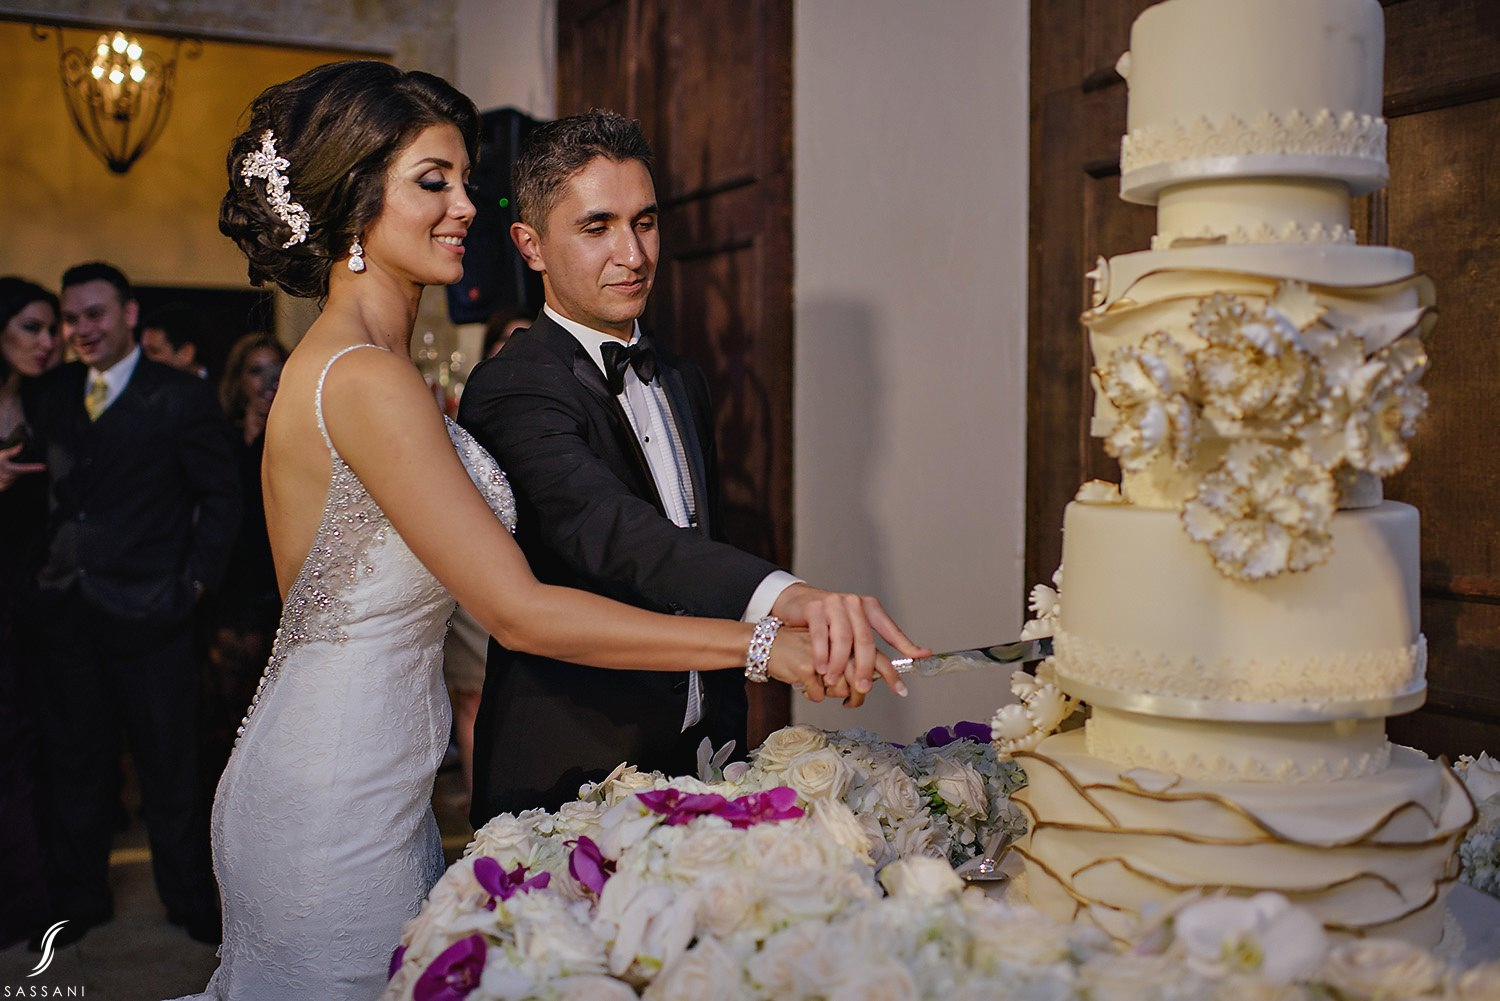 persian wedding cake recipe golnaz amp farzad bell tower on 34th wedding 18205